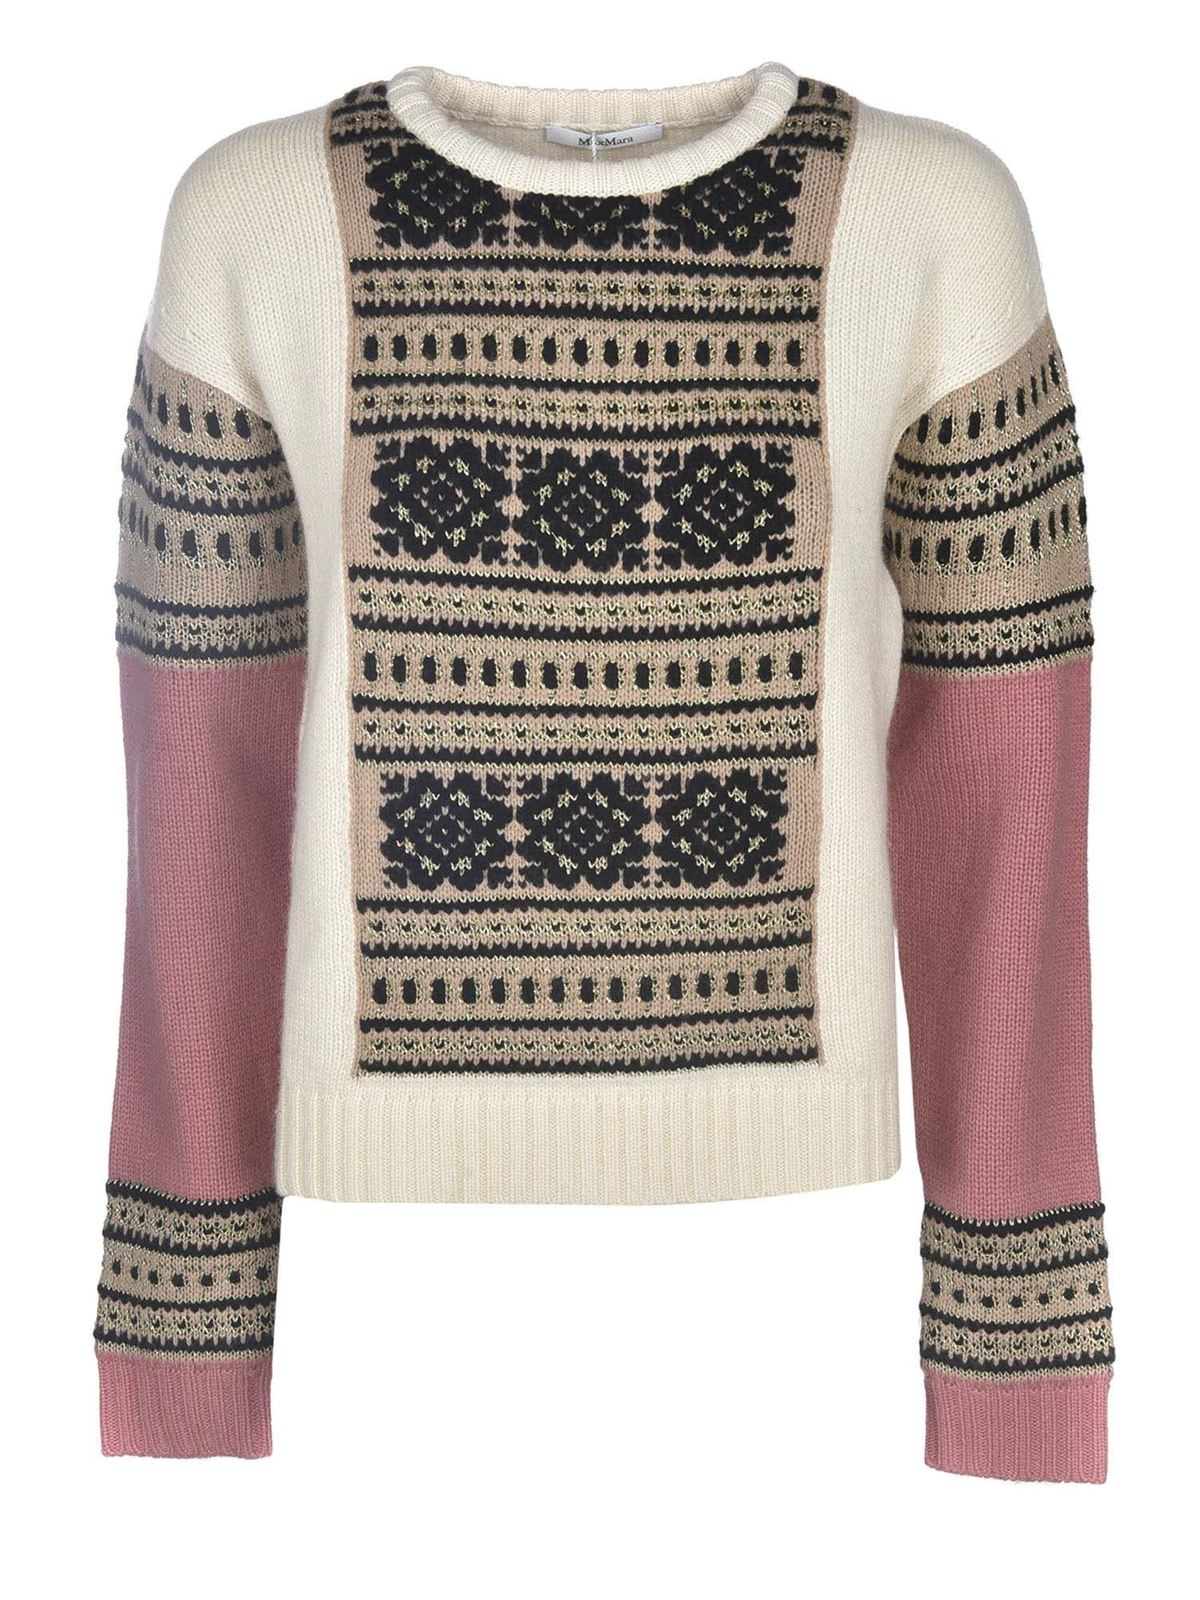 MAX MARA LIANA SWEATER IN WHITE AND PINK